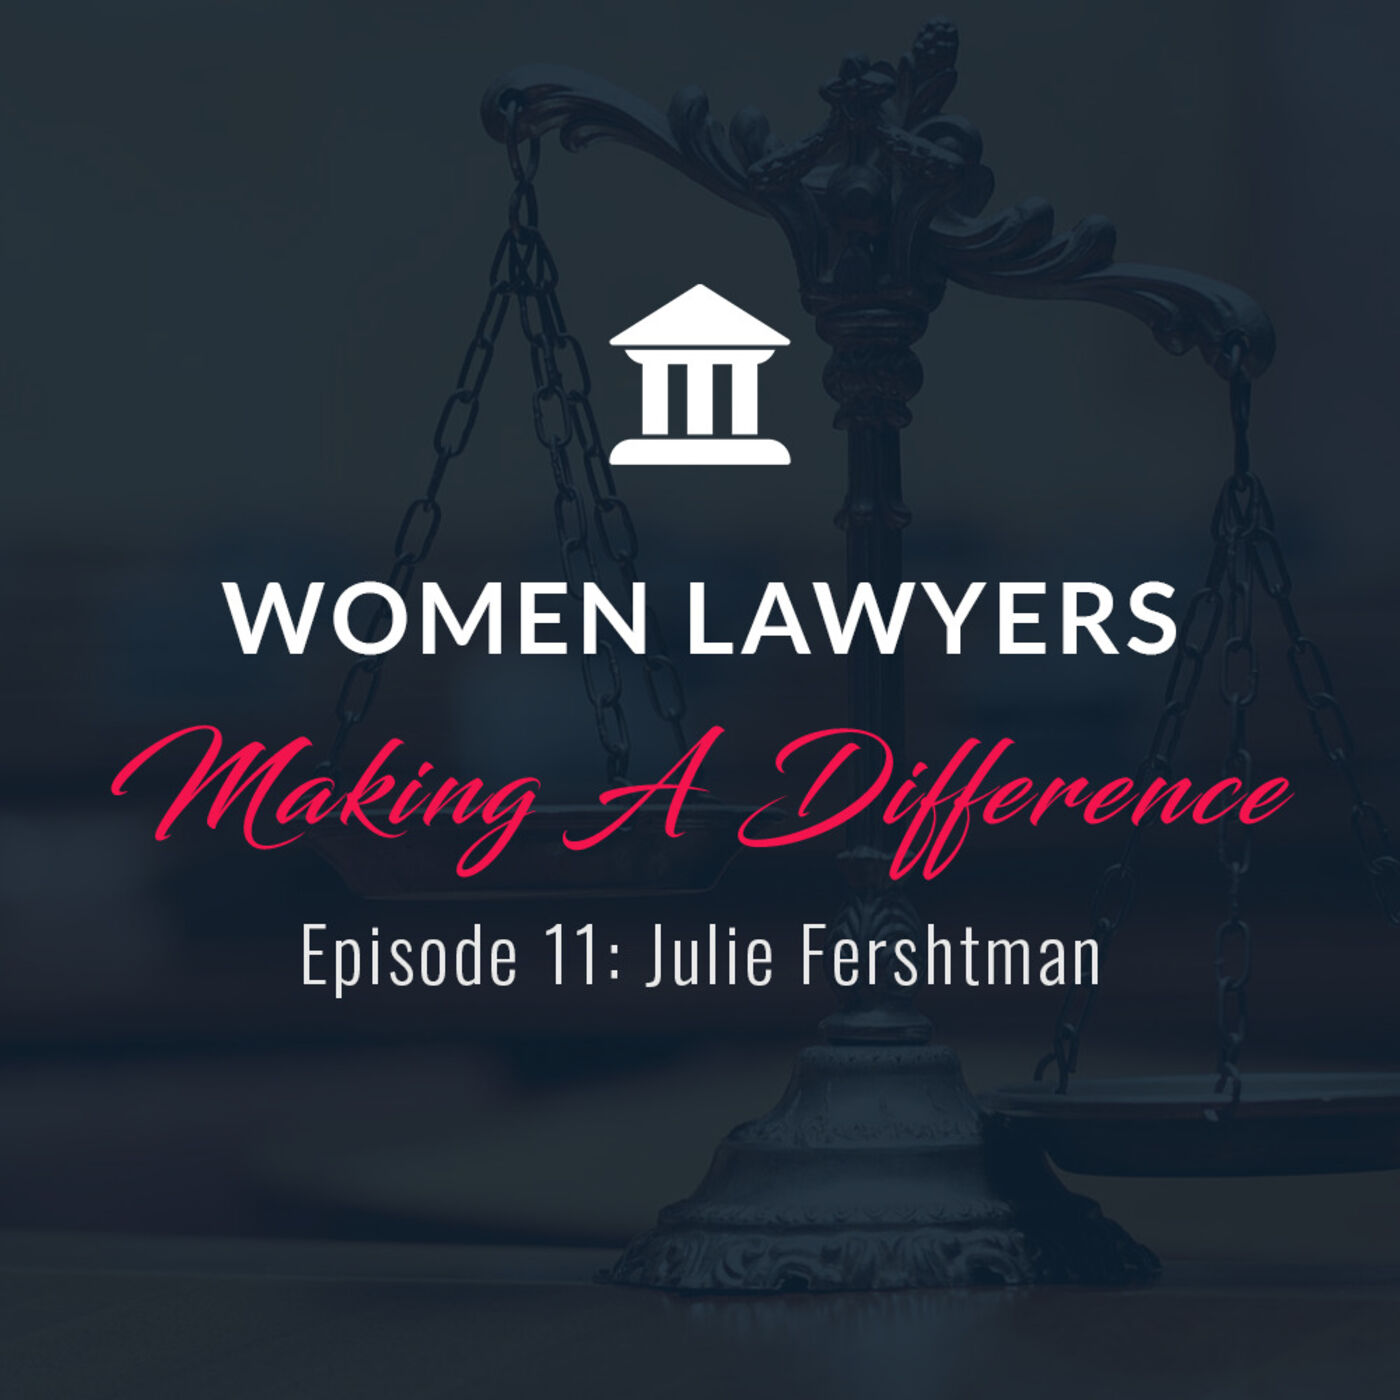 Women Lawyers Making A Difference: Interview with Julie Fershtman